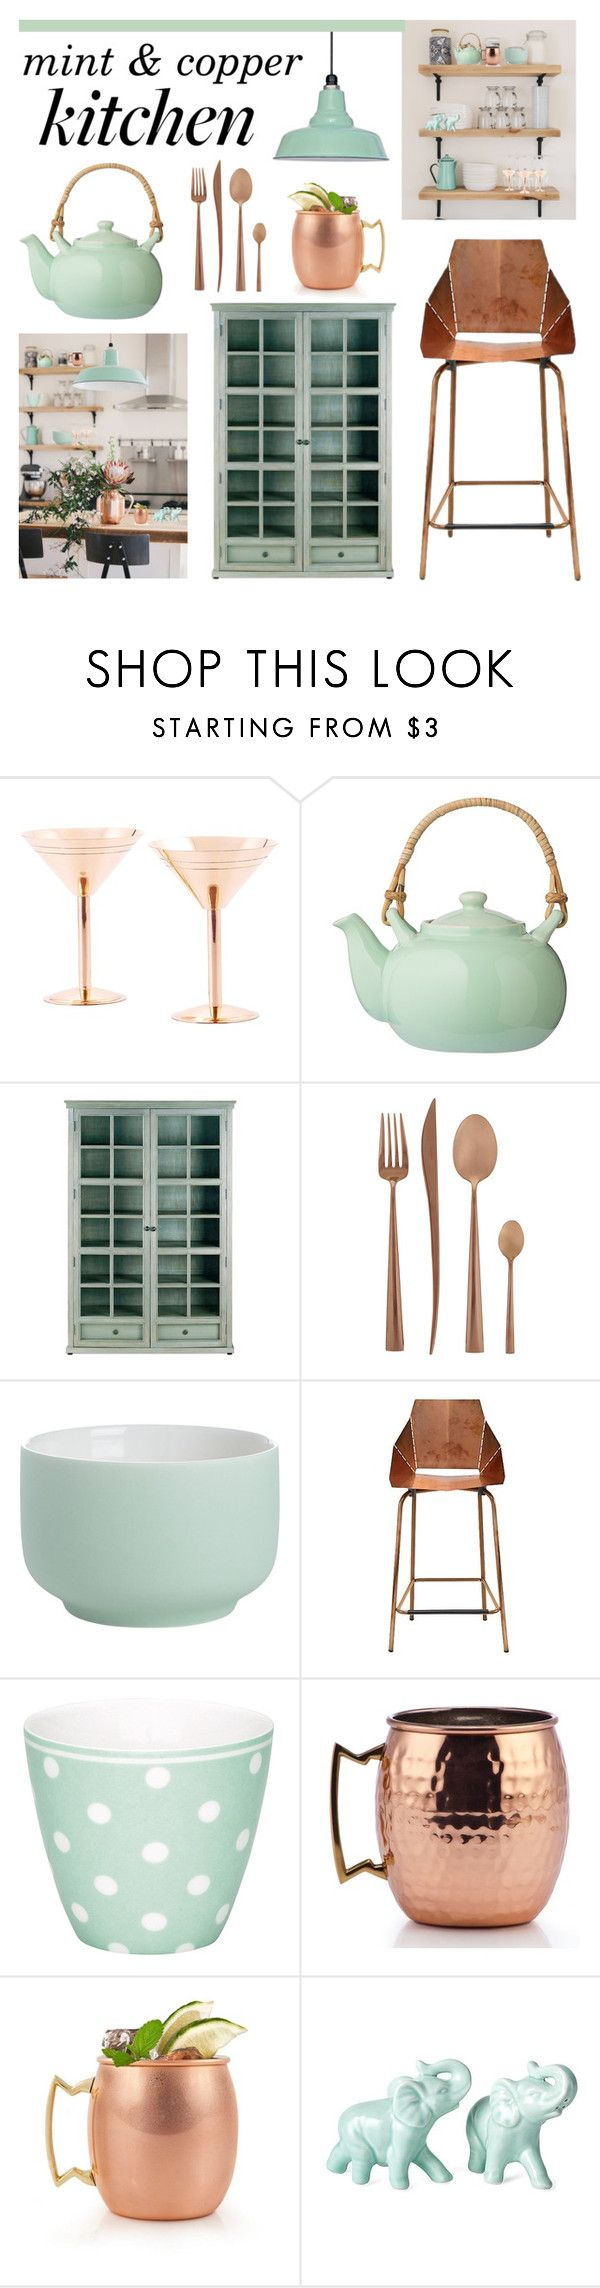 mint copper kitchen Home Decor